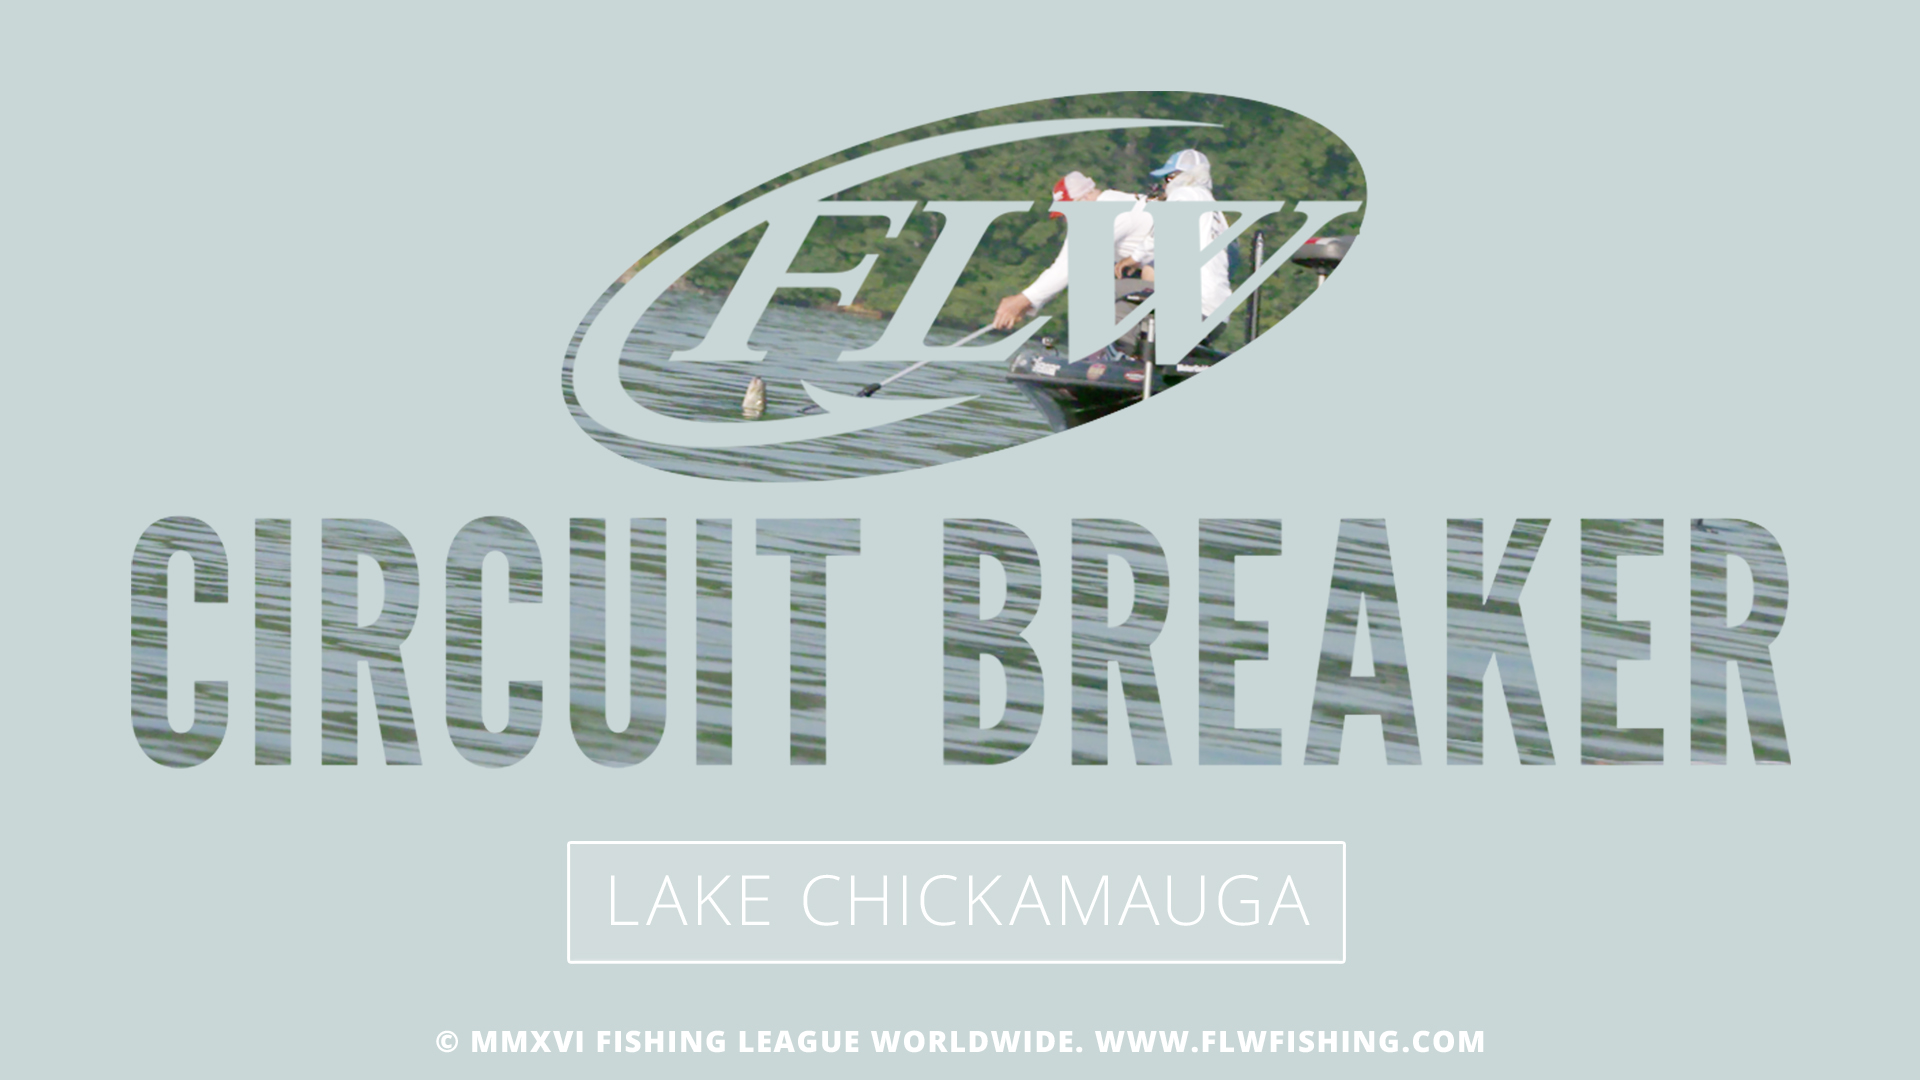 Circuit Breaker - S03E05 - Lake Chickamauga